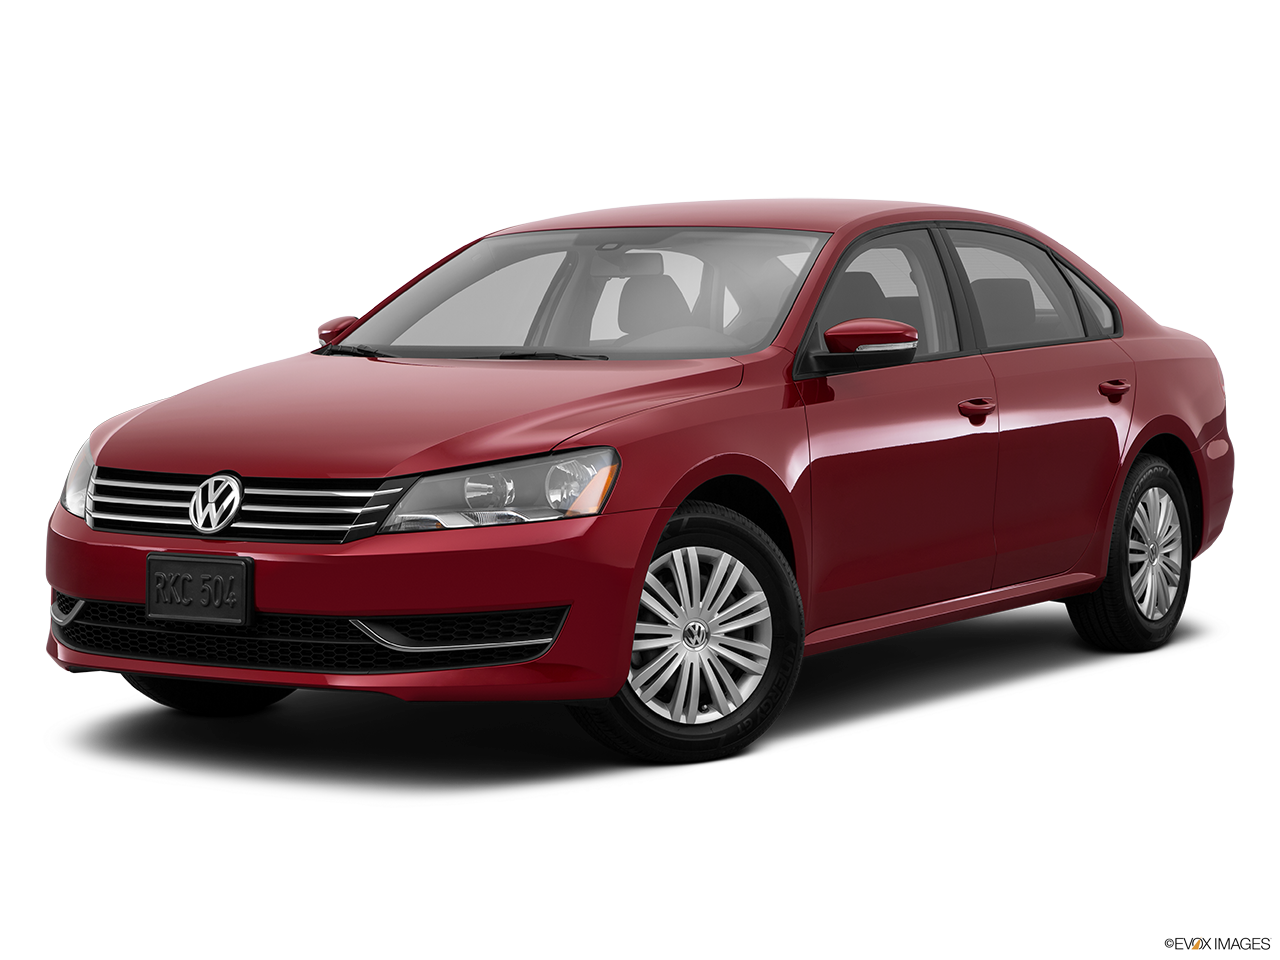 2015 volkswagen passat dealer serving nashville hallmark volkswagen. Black Bedroom Furniture Sets. Home Design Ideas